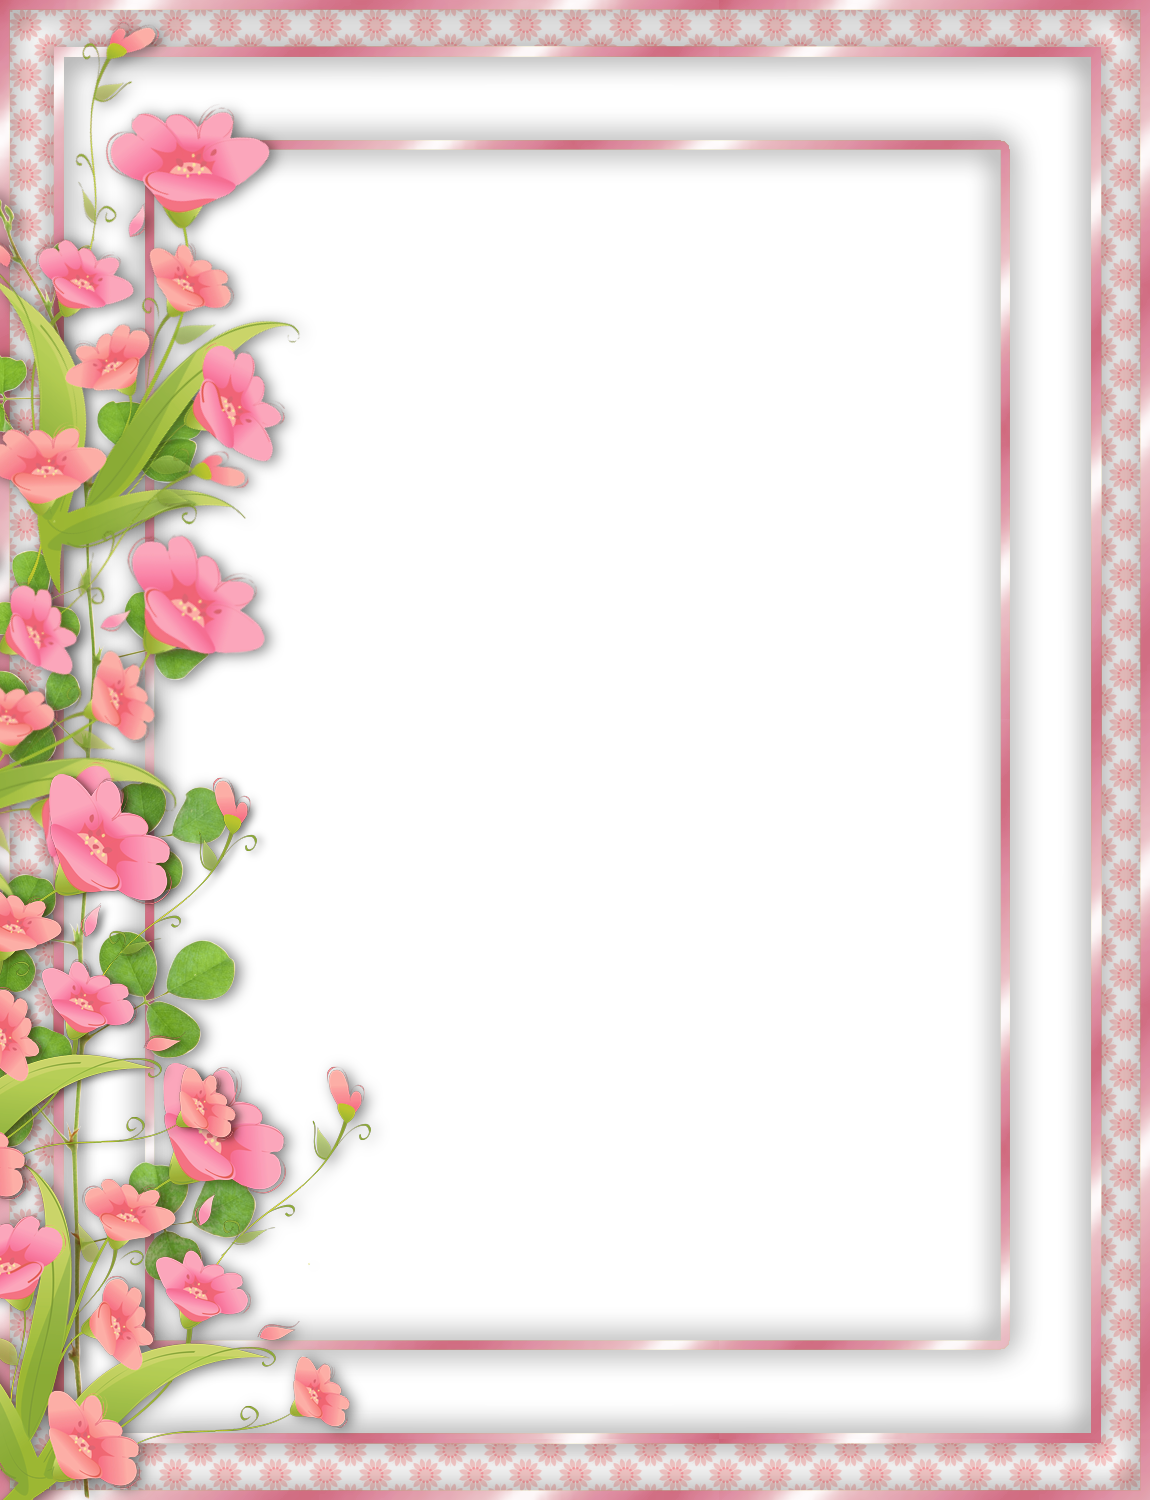 Mexican flowers border png. Pink transparent frame with